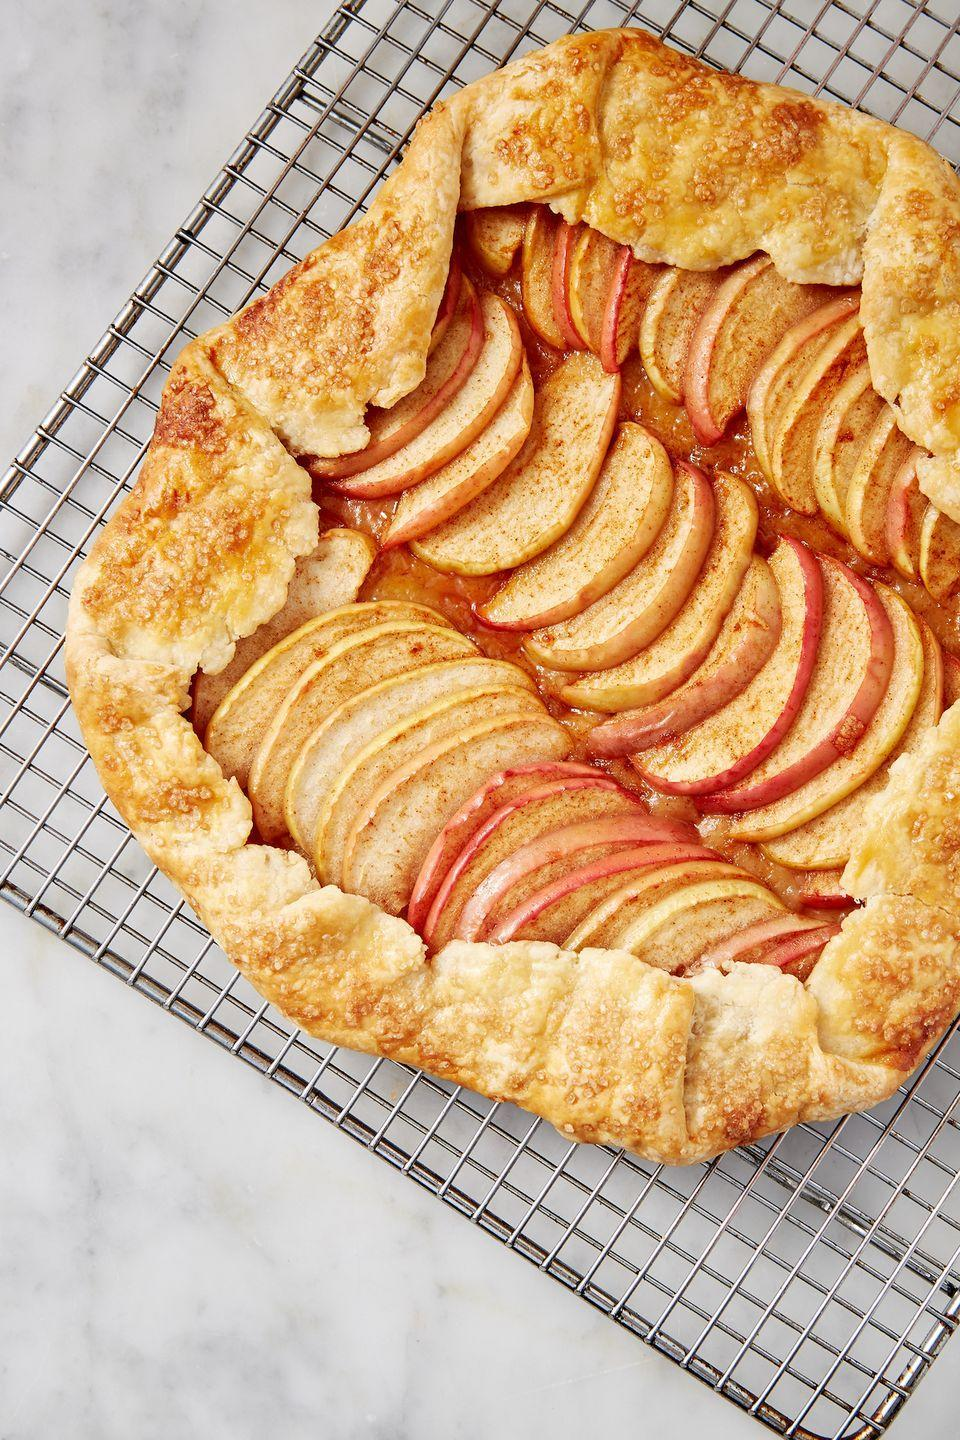 "<p>It's got all the flavor of an apple pie, <em>but</em> is so much easier to whip up. </p><p>Get the recipe from <a href=""https://www.delish.com/cooking/recipe-ideas/a28158563/easy-apple-galette-recipe/"" rel=""nofollow noopener"" target=""_blank"" data-ylk=""slk:Delish"" class=""link rapid-noclick-resp"">Delish</a>.</p>"